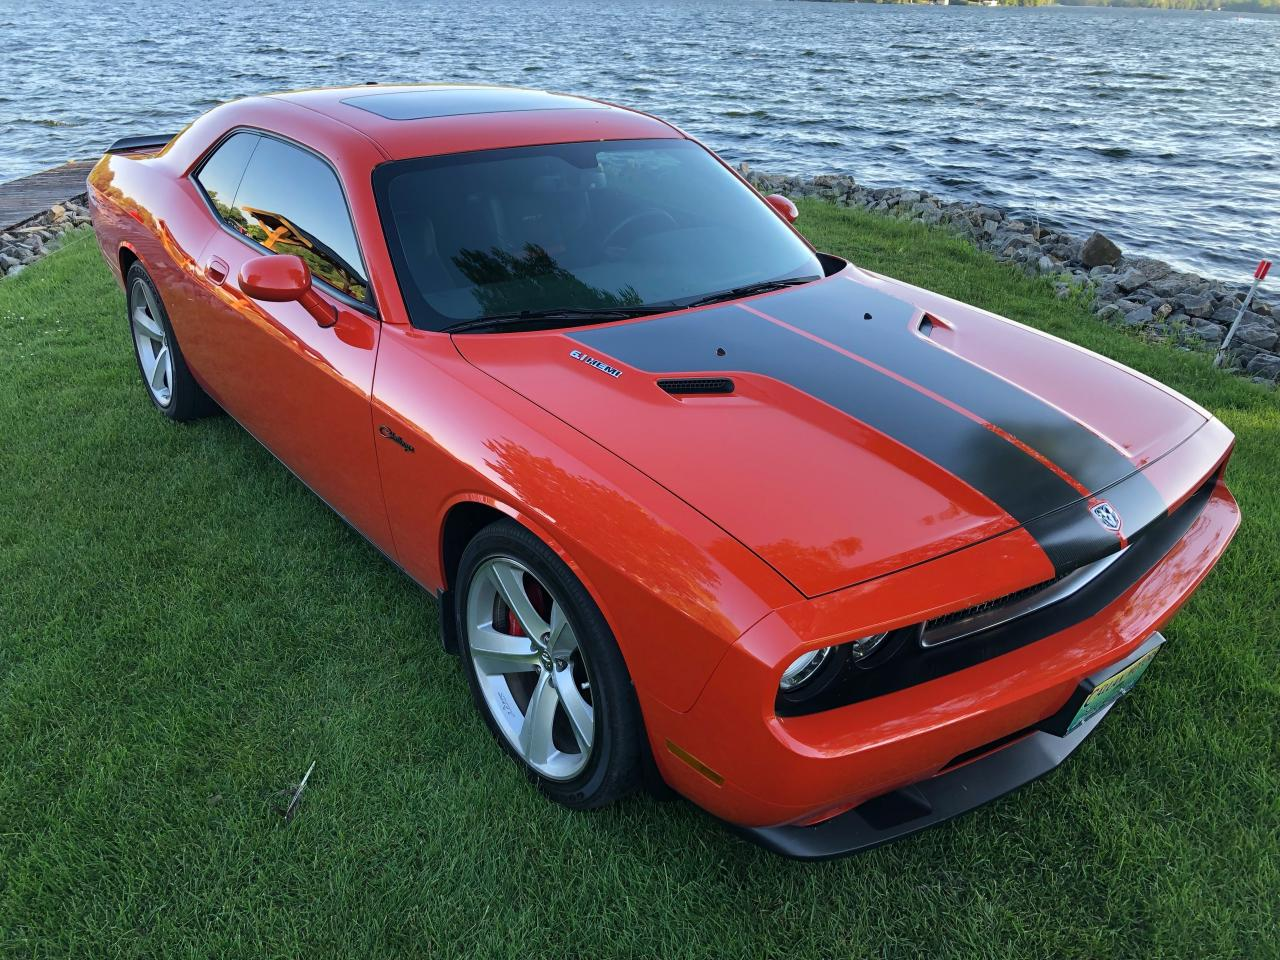 2008 Dodge Challenger SRT8 With Only 17300 km First Edition model